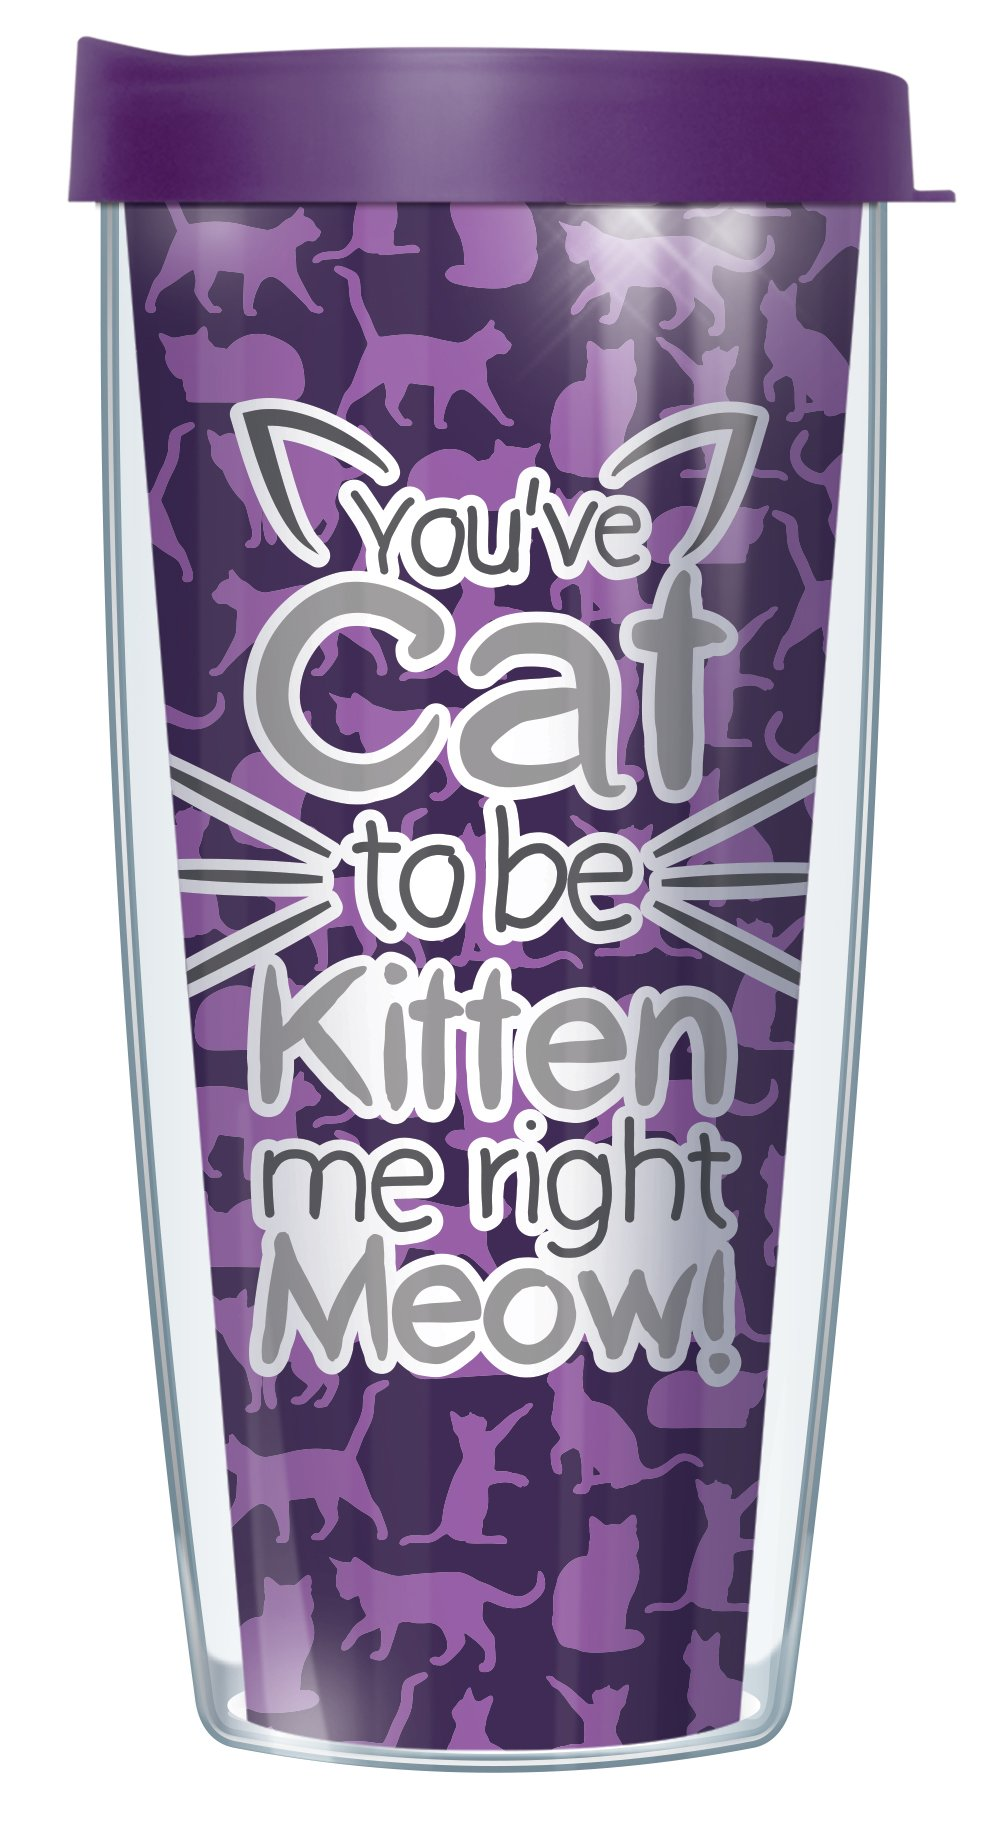 You've Cat To Be Kitten Me Right Meow 16oz Mug Tumbler Cup with Purple Lid